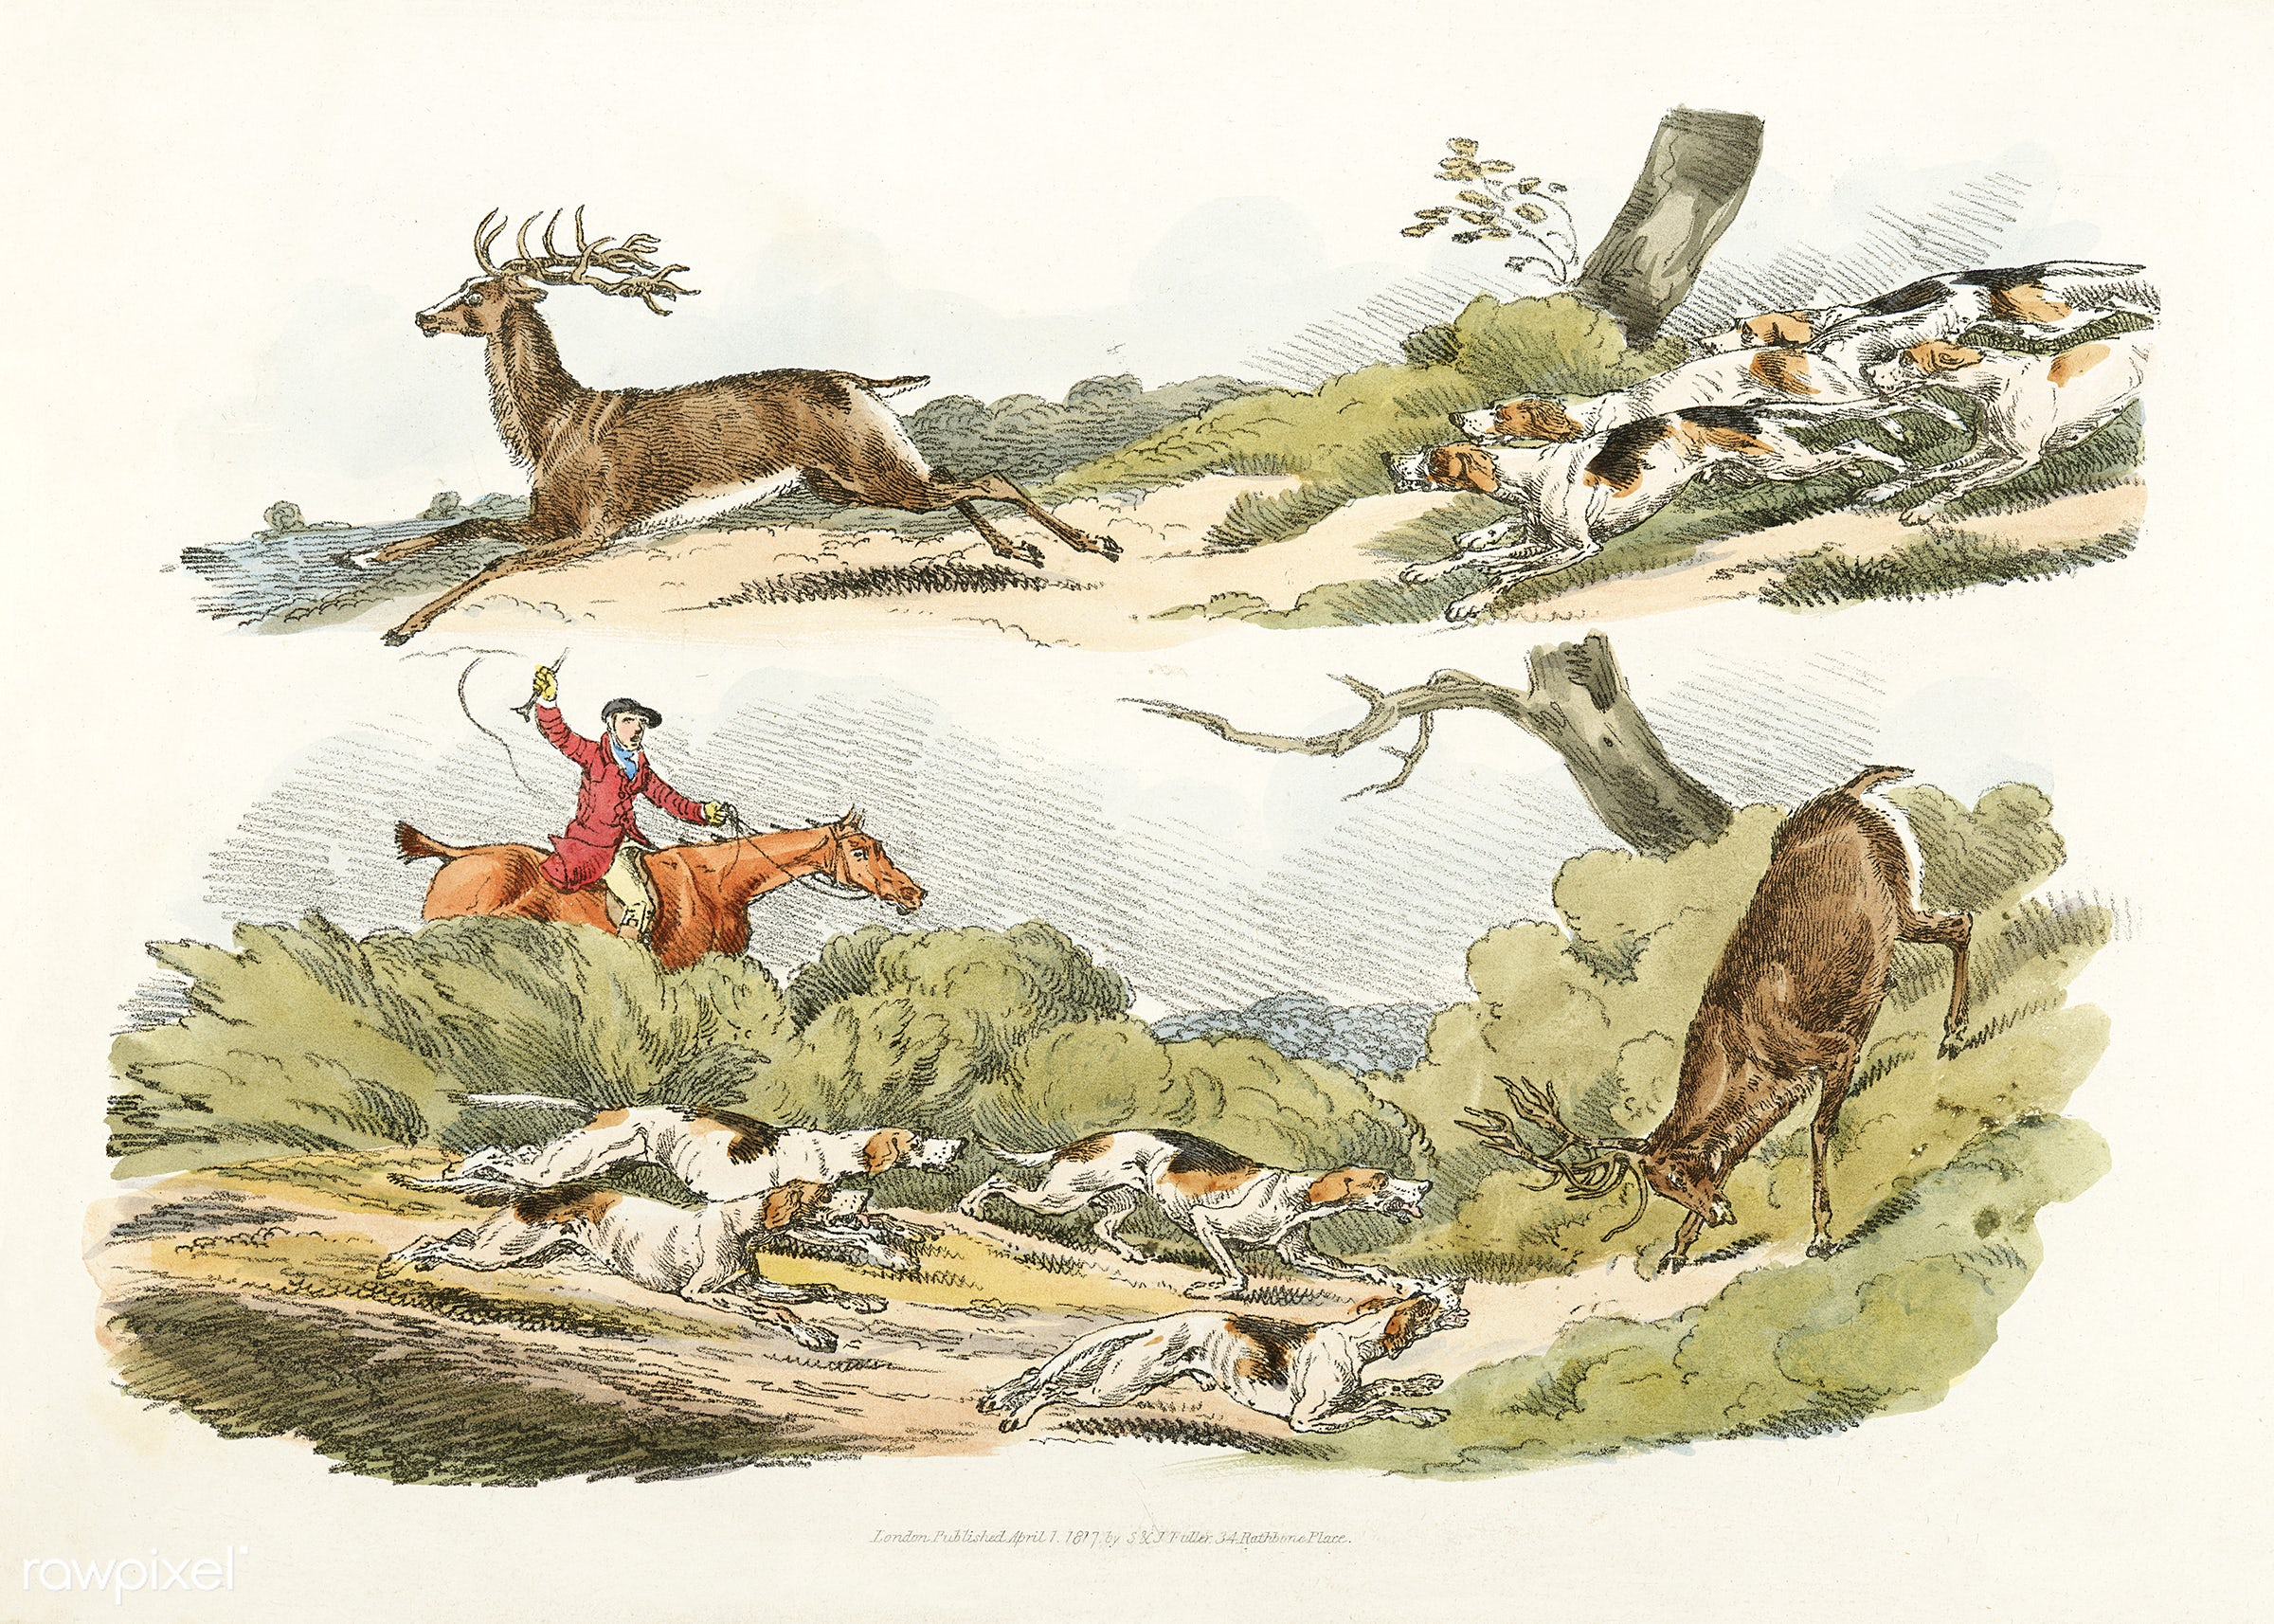 Illustration of a hunter with dogs chasing a stag from the vintage book Sporting Sketches (1817-1818) by Henry Alken (1784-...